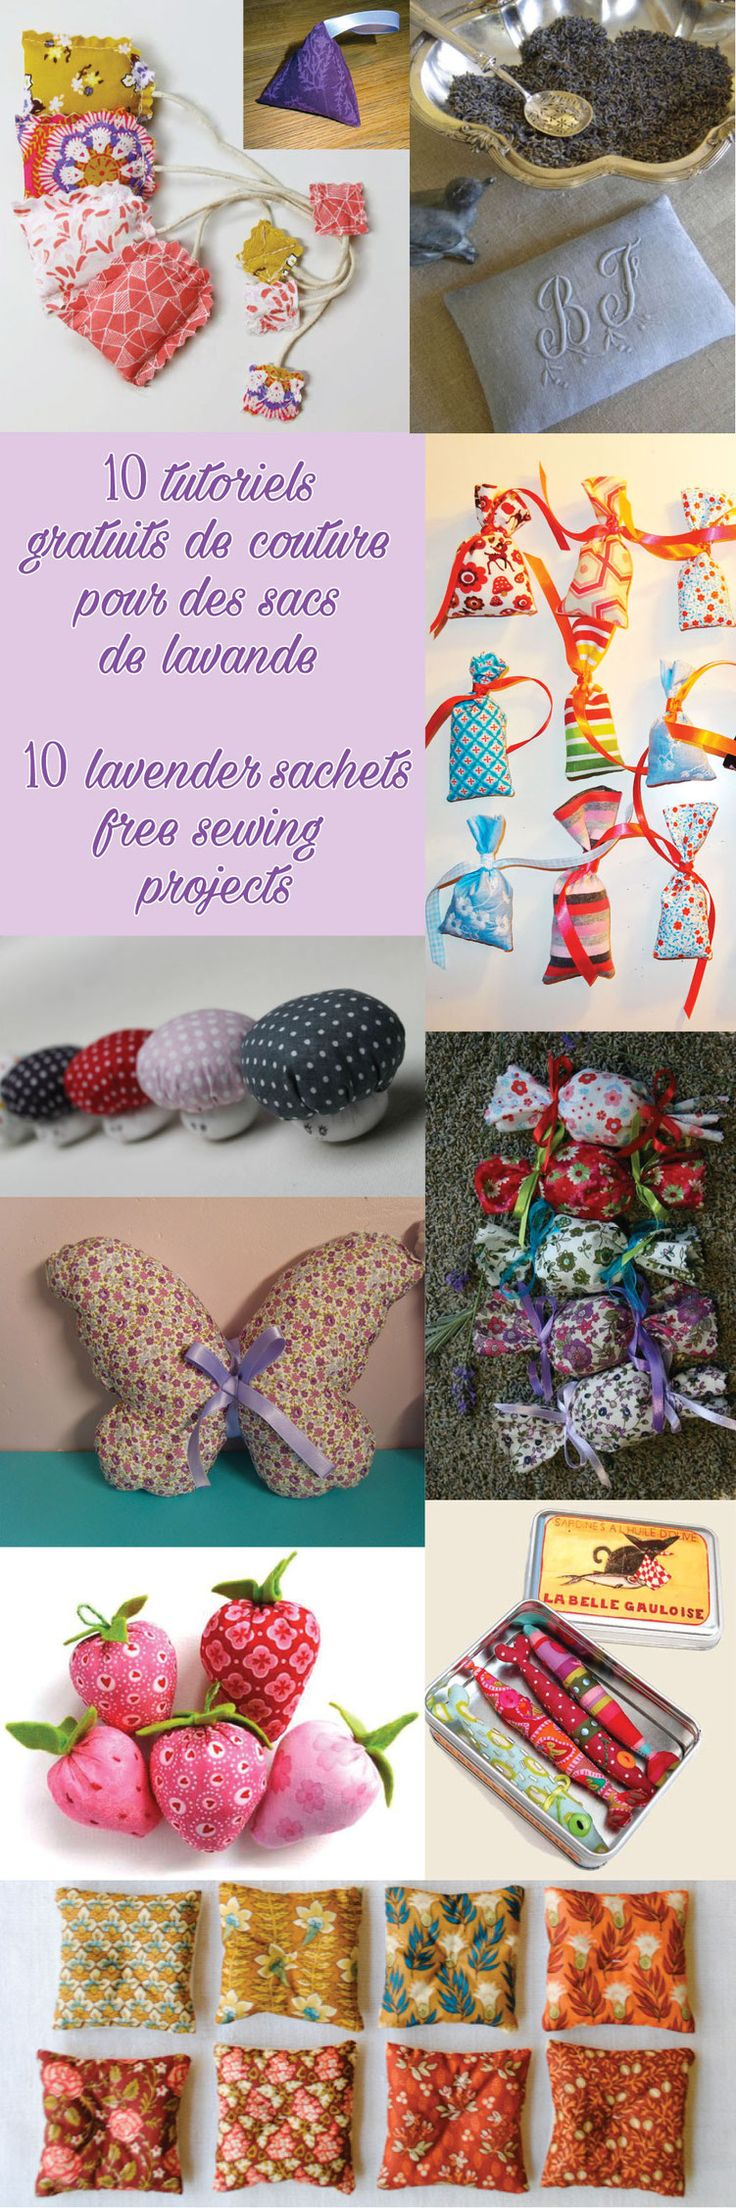 10 tutoriels gratuits de couture pour sacs de lavande - 10 lavender sachets free sewing projects - DIY - Tutorial - Patterns - ideas - BizzBizzHandMade                                                                                                                                                                                 Plus